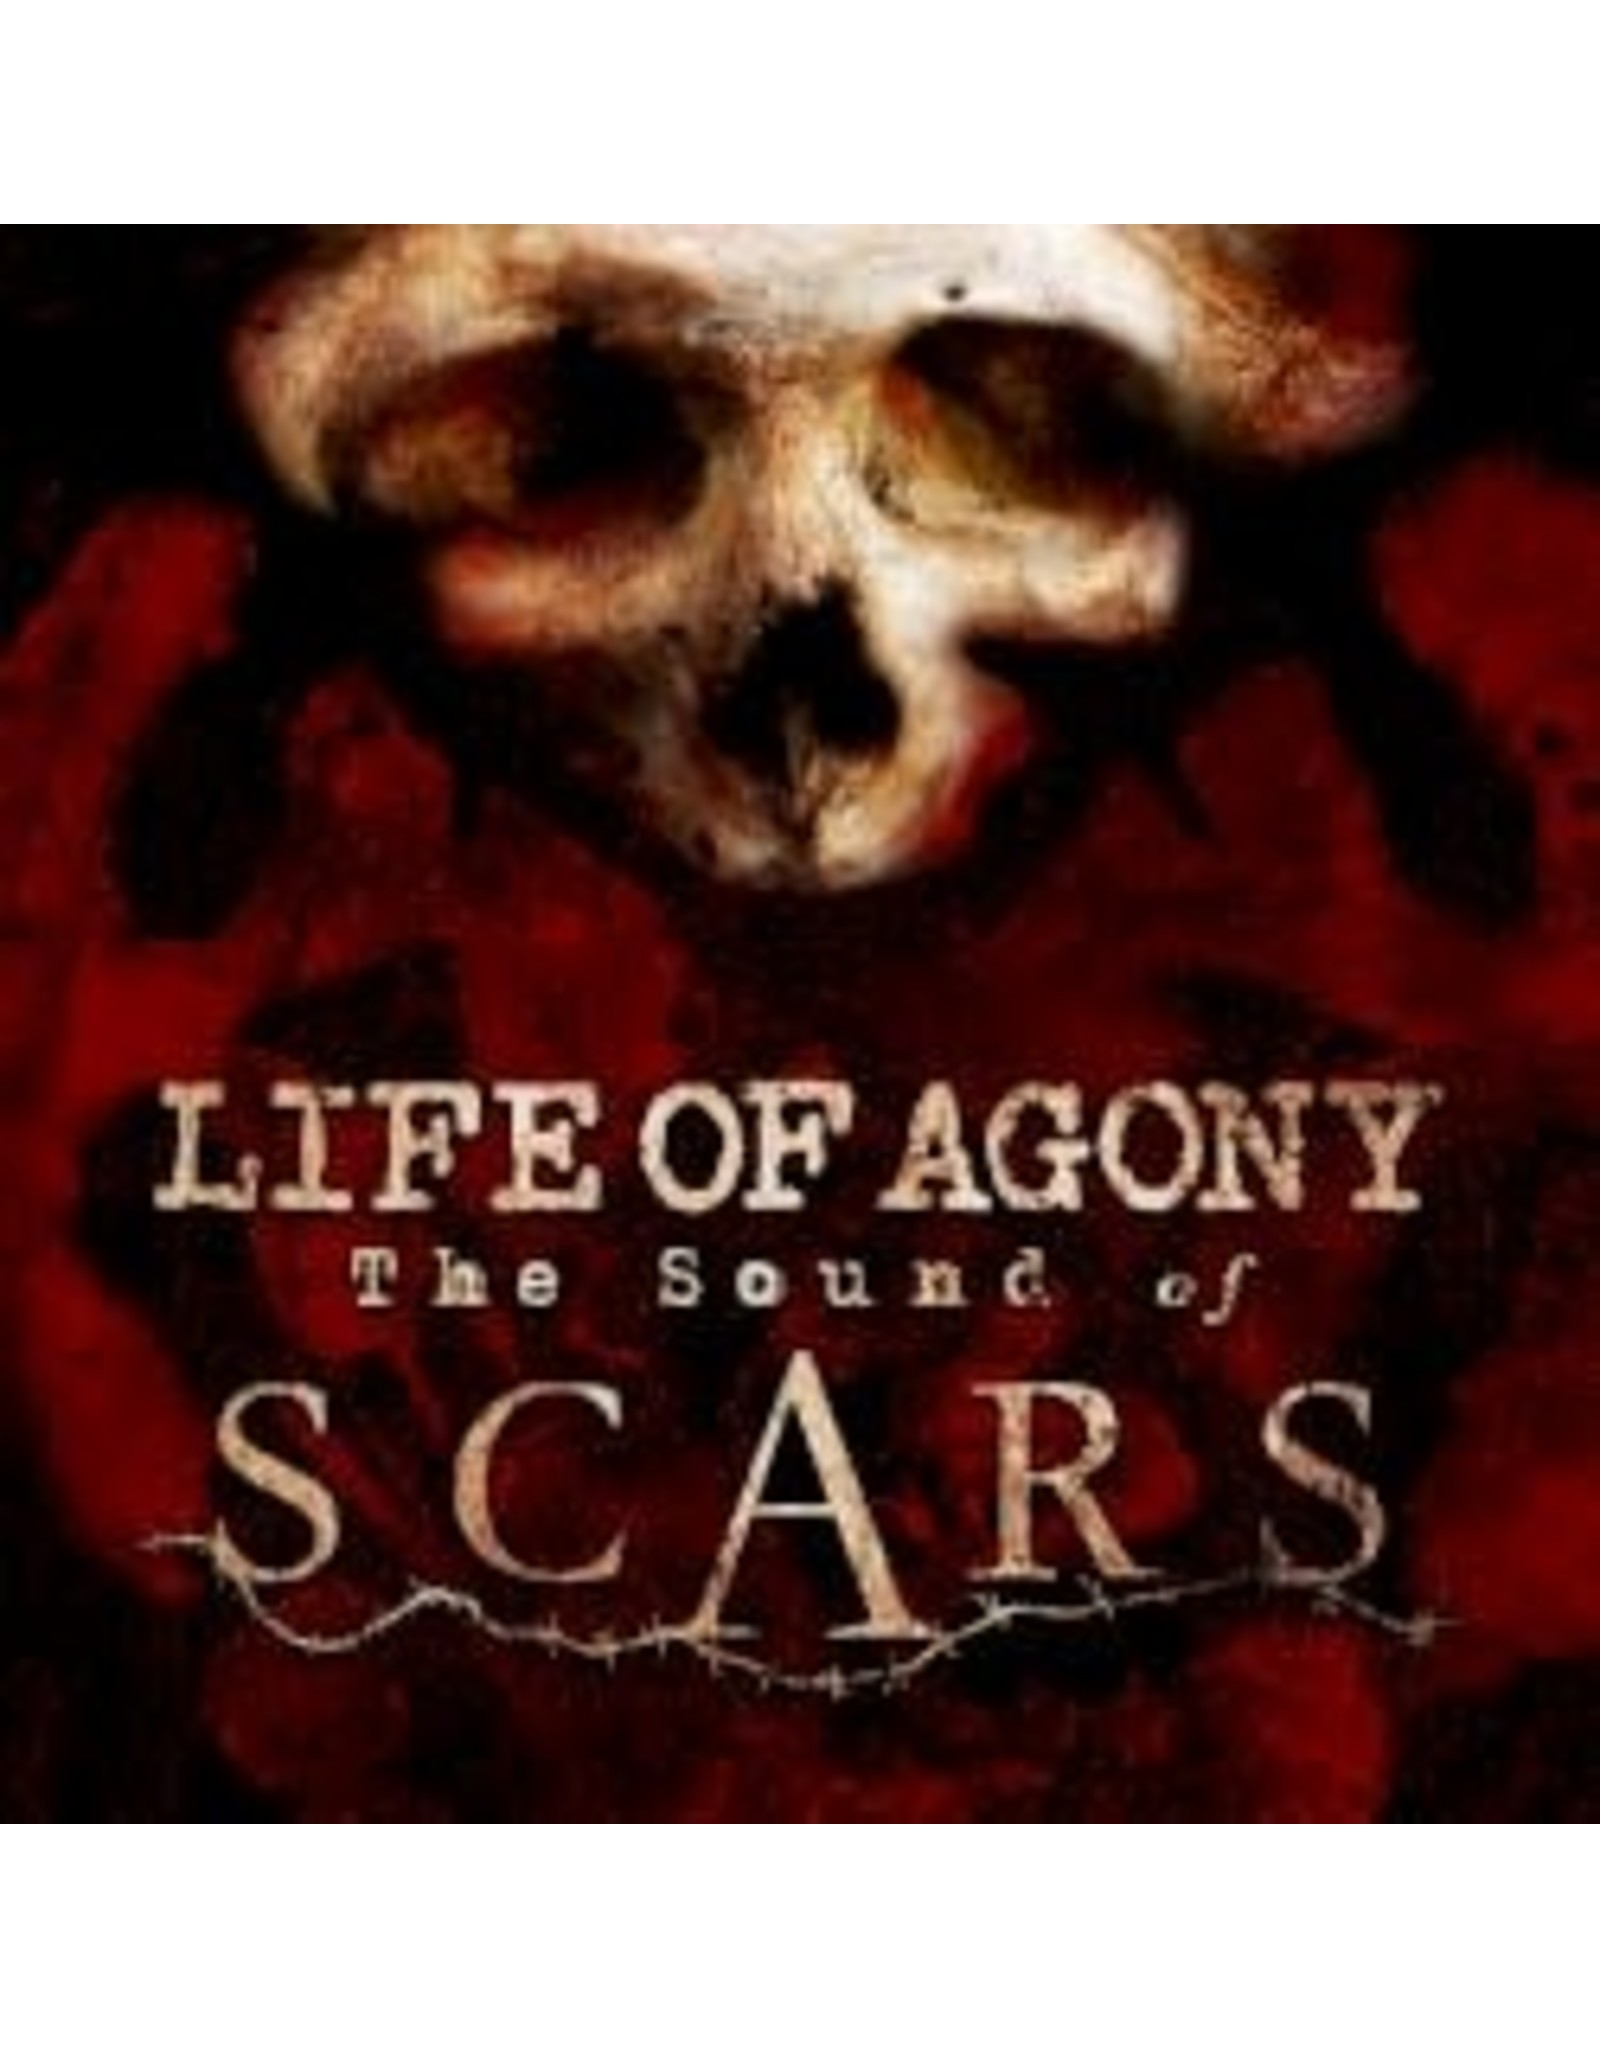 Life Of Agony - Sound of Scars LP